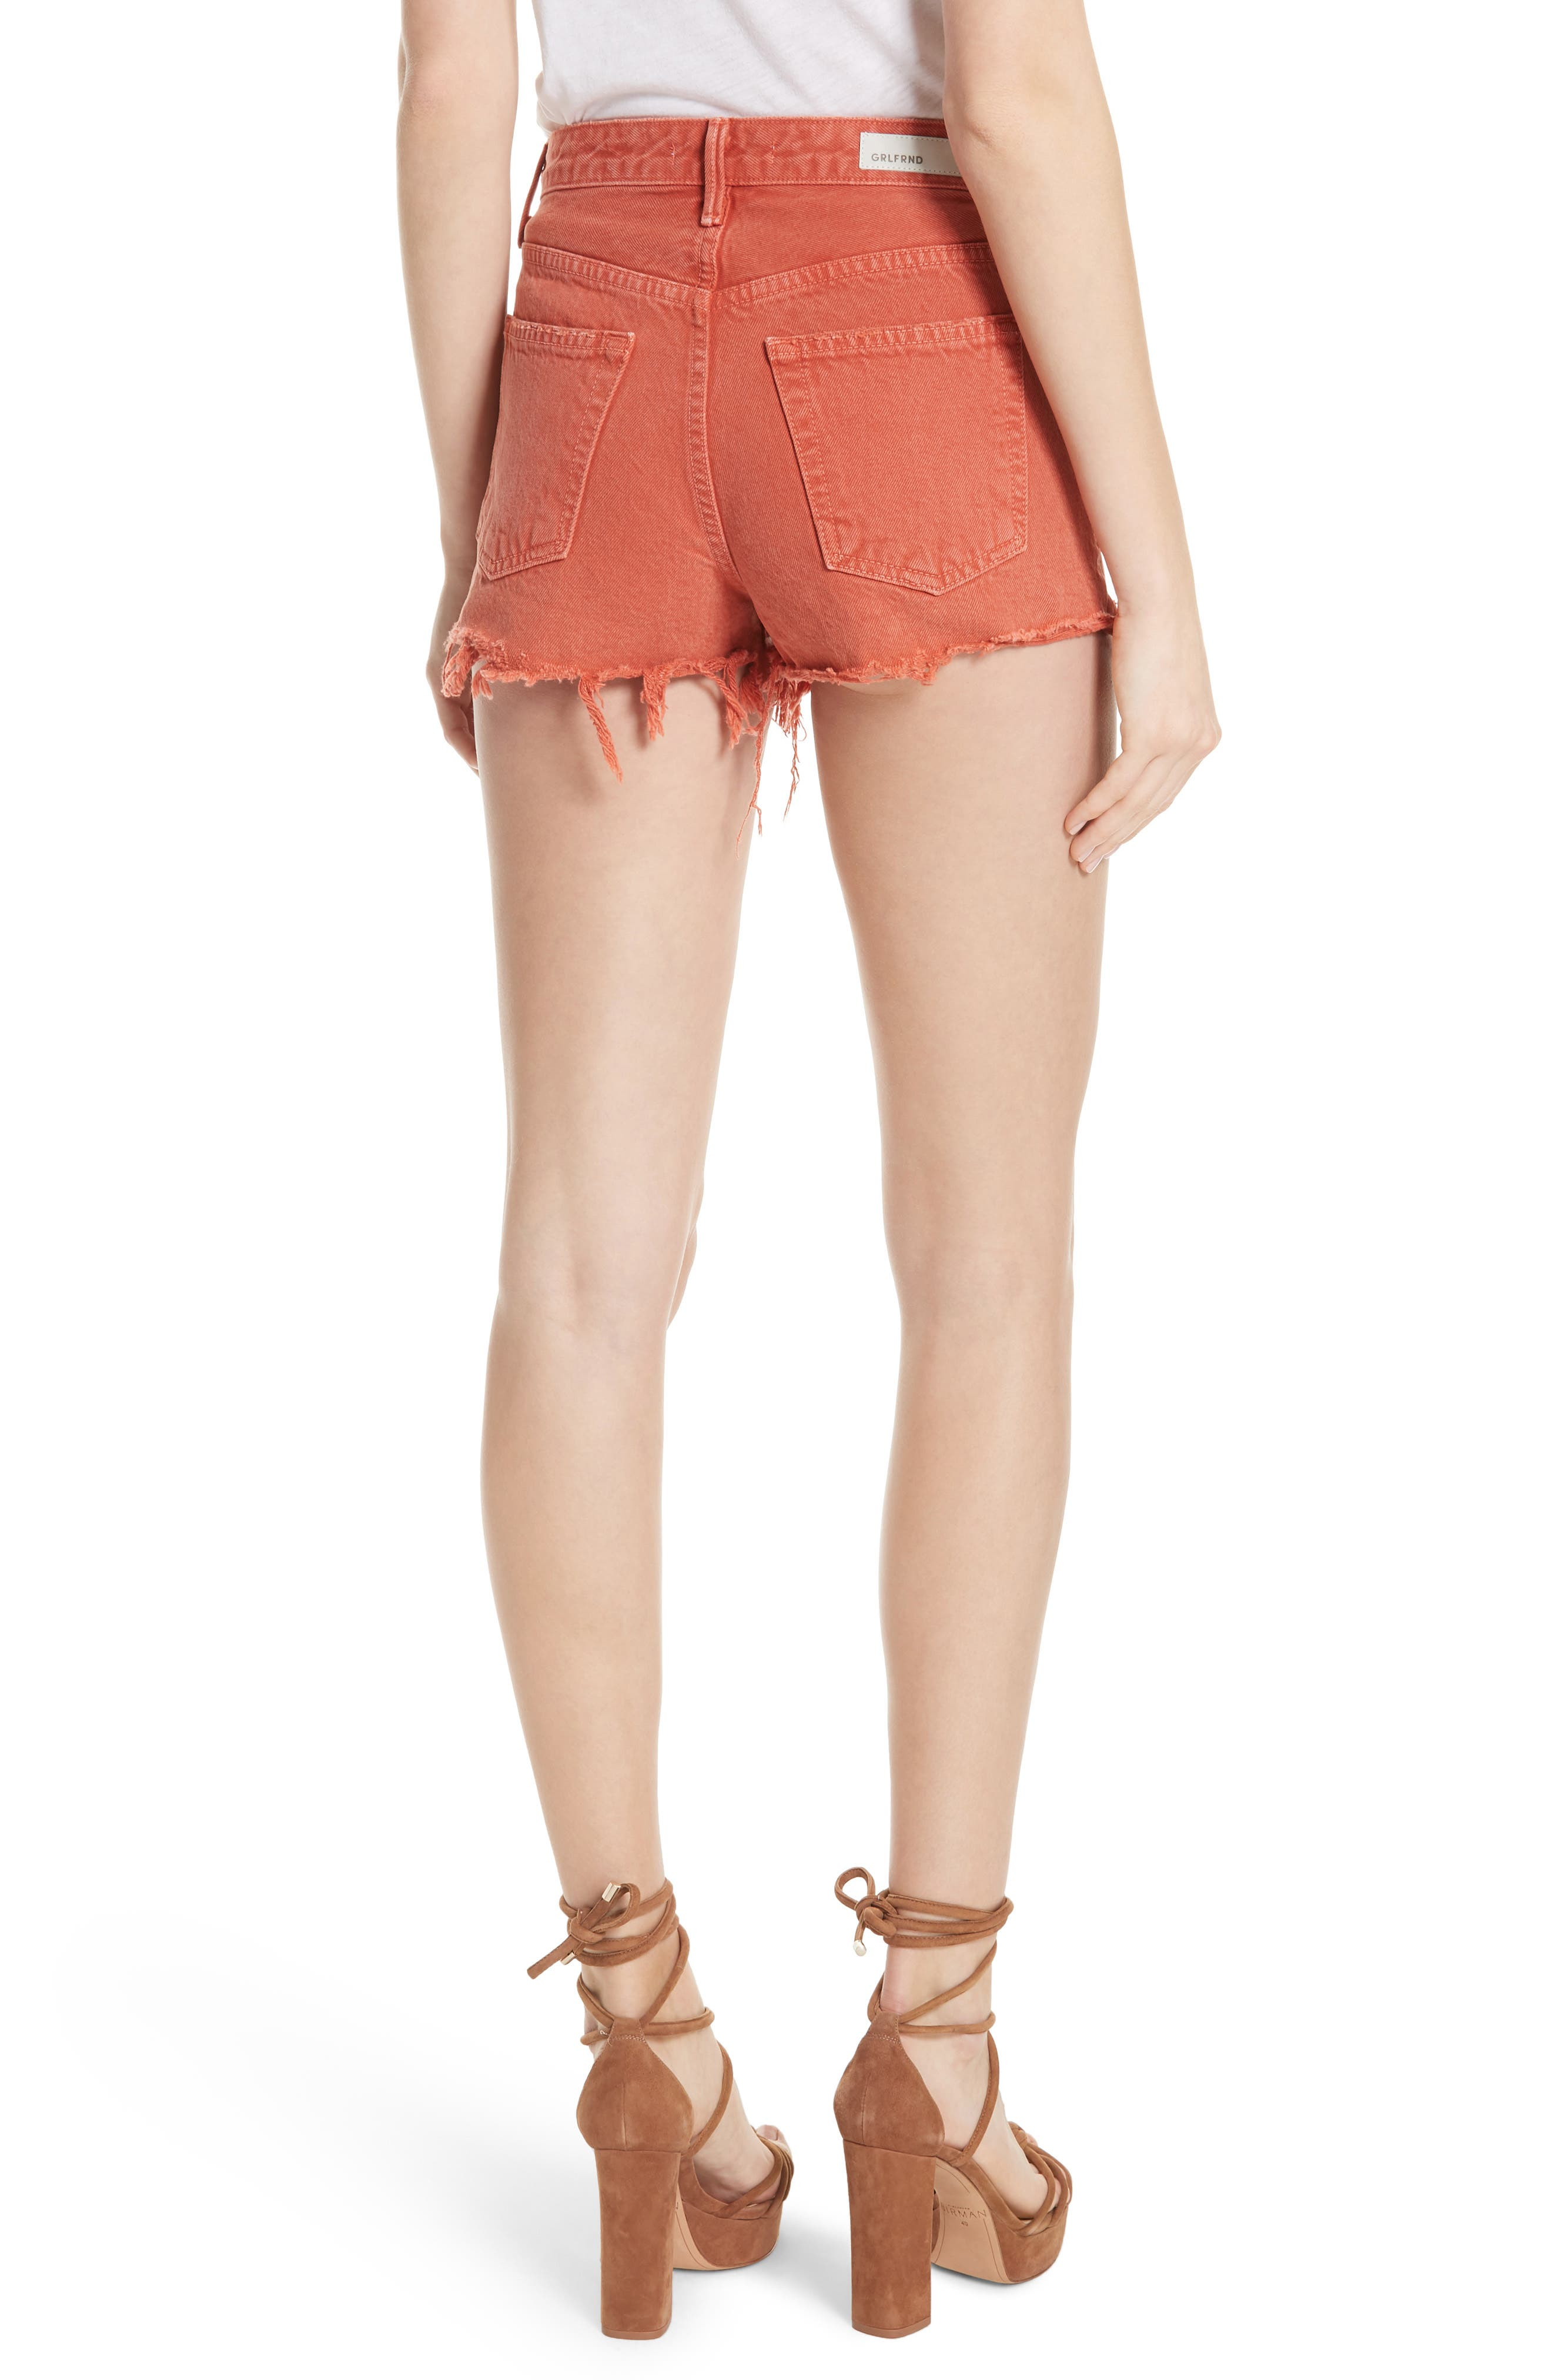 Cindy Rigid High Waist Denim Shorts,                             Alternate thumbnail 2, color,                             Spice Market